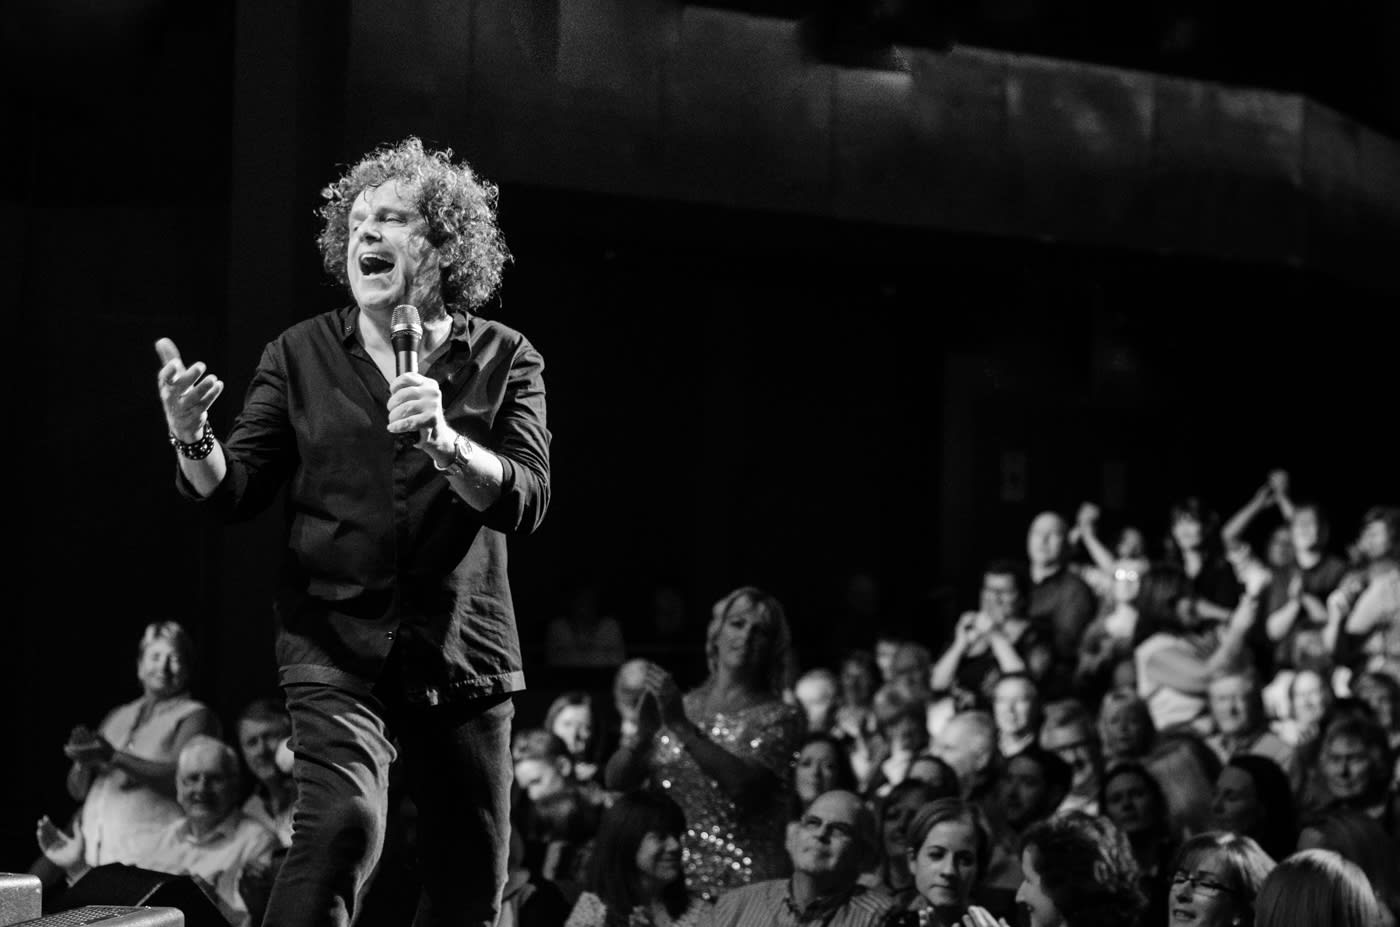 Leo Sayer at Bord Gais Energy Theatre by Sean Smyth (16-10-15) (104 of 129)